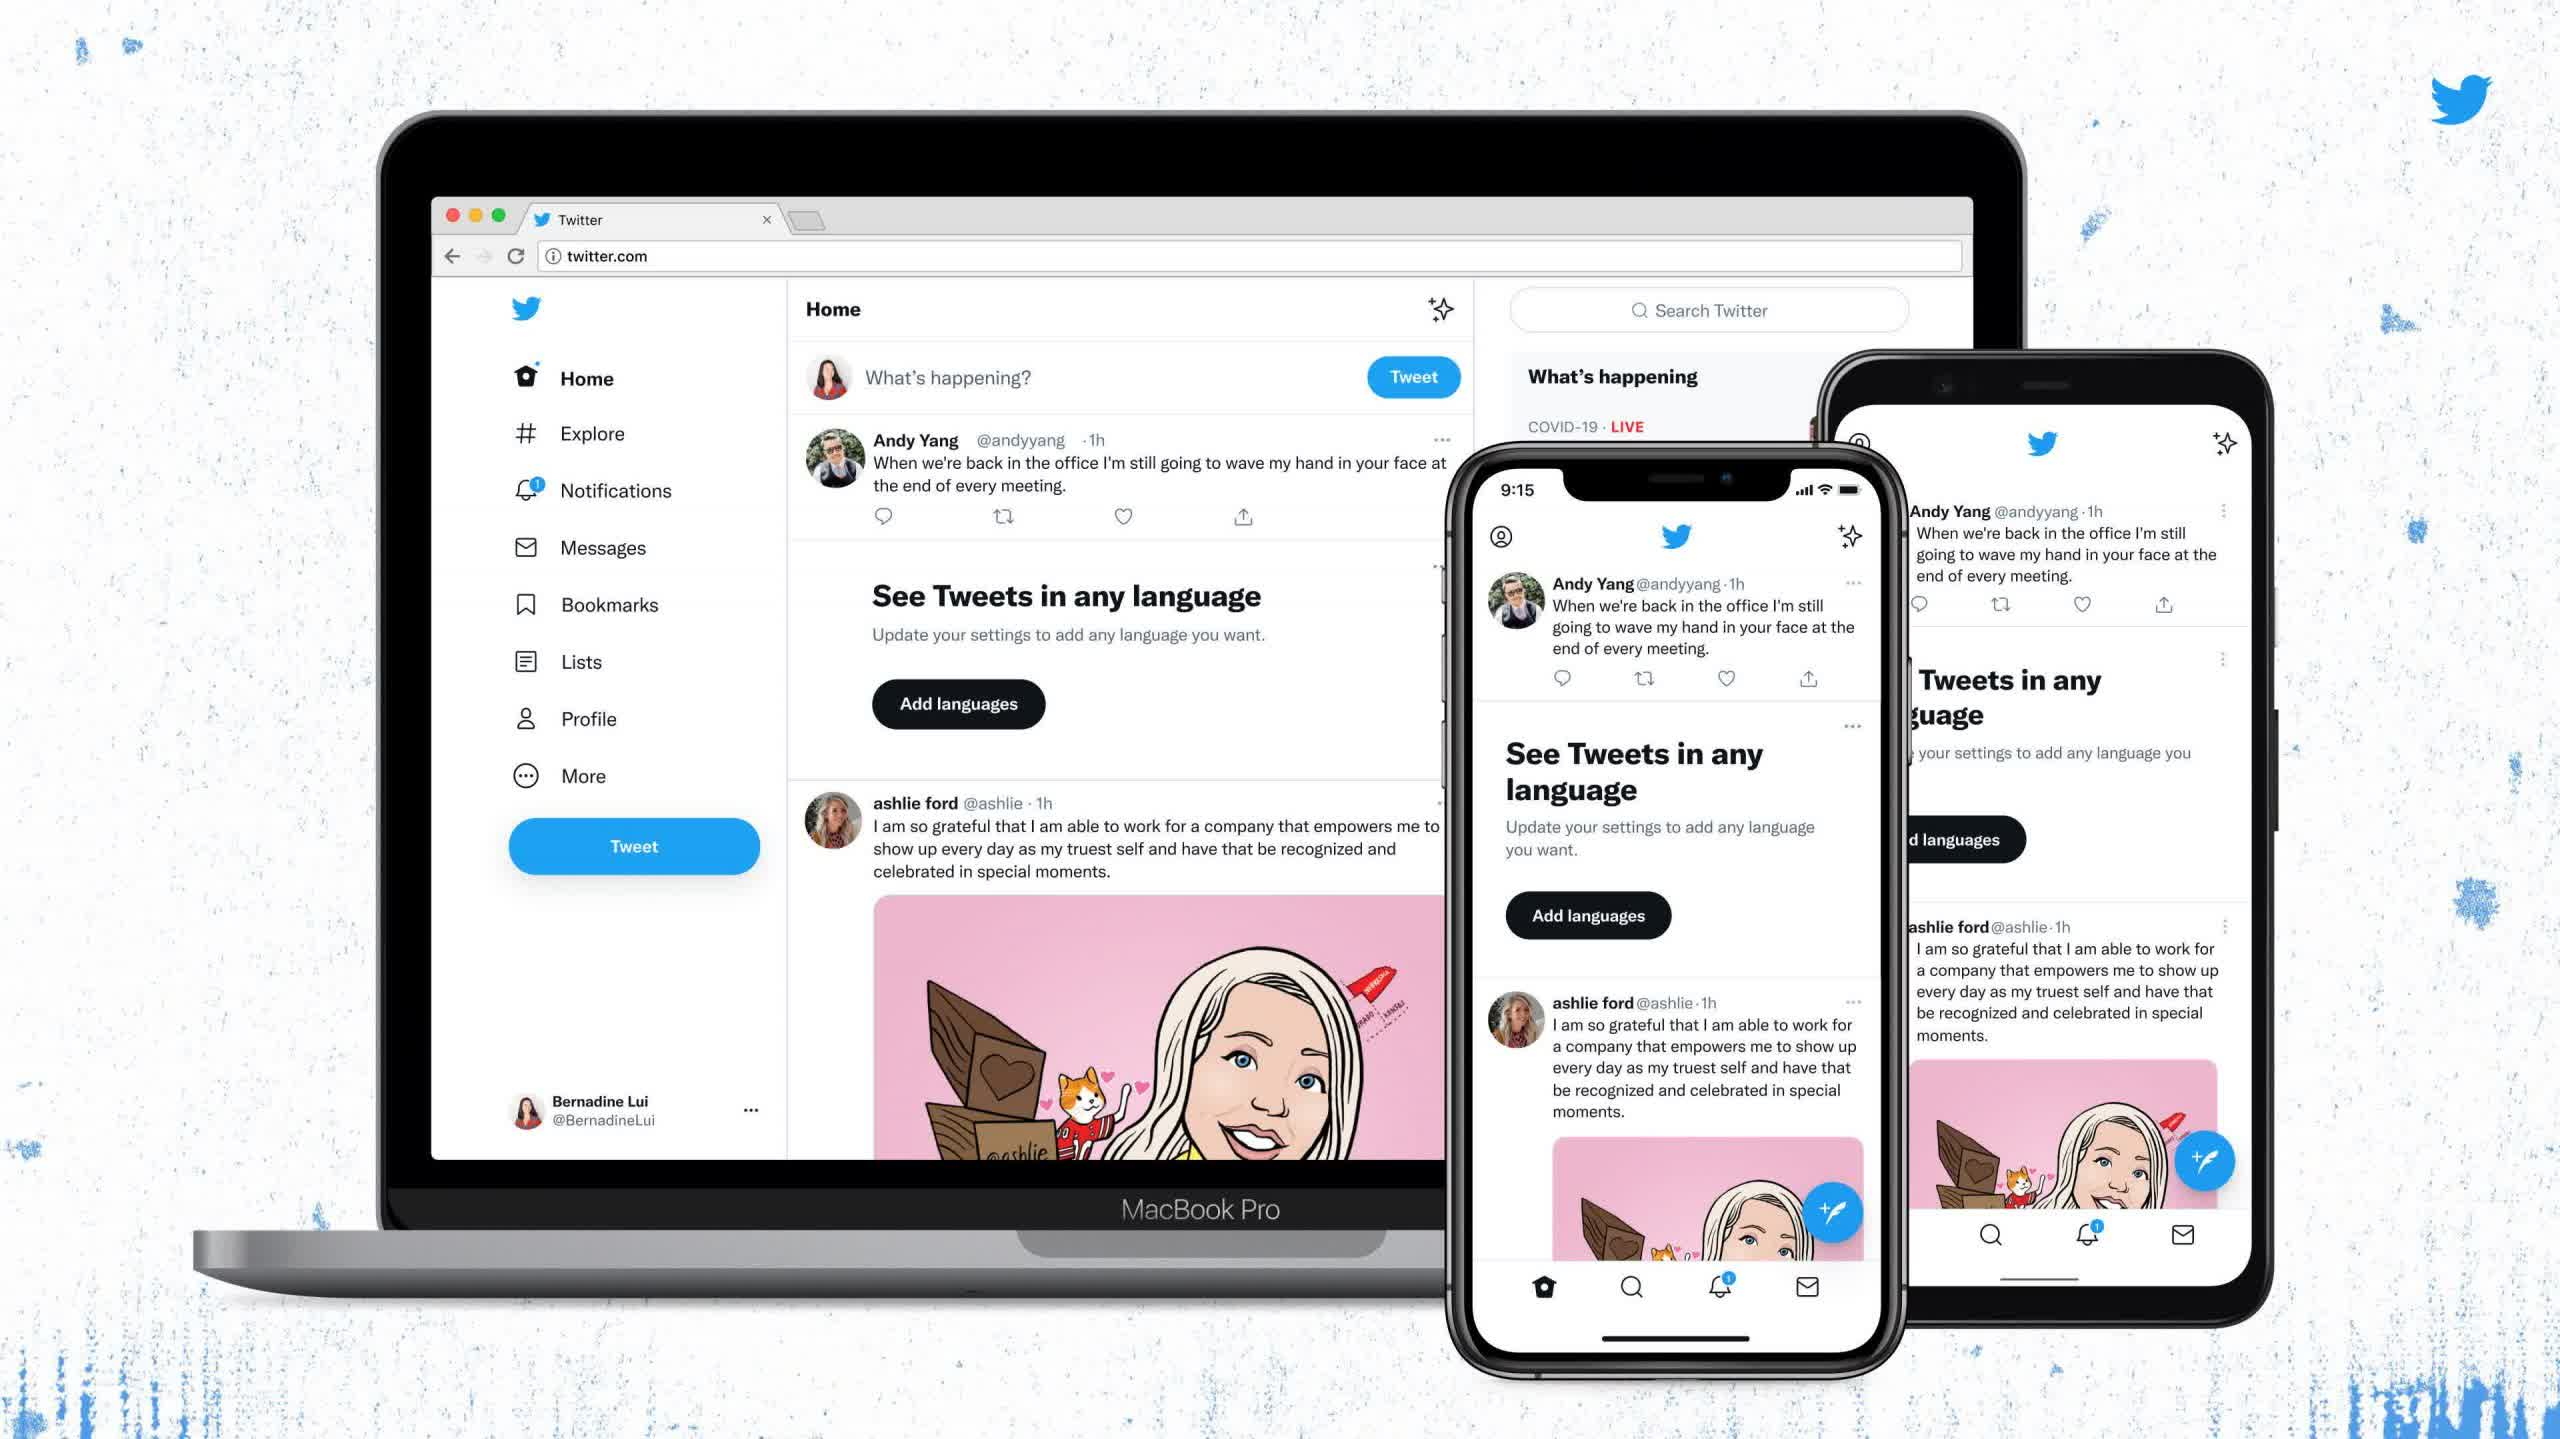 Twitter is redesigning its redesign after users complain of headaches and eyestrain